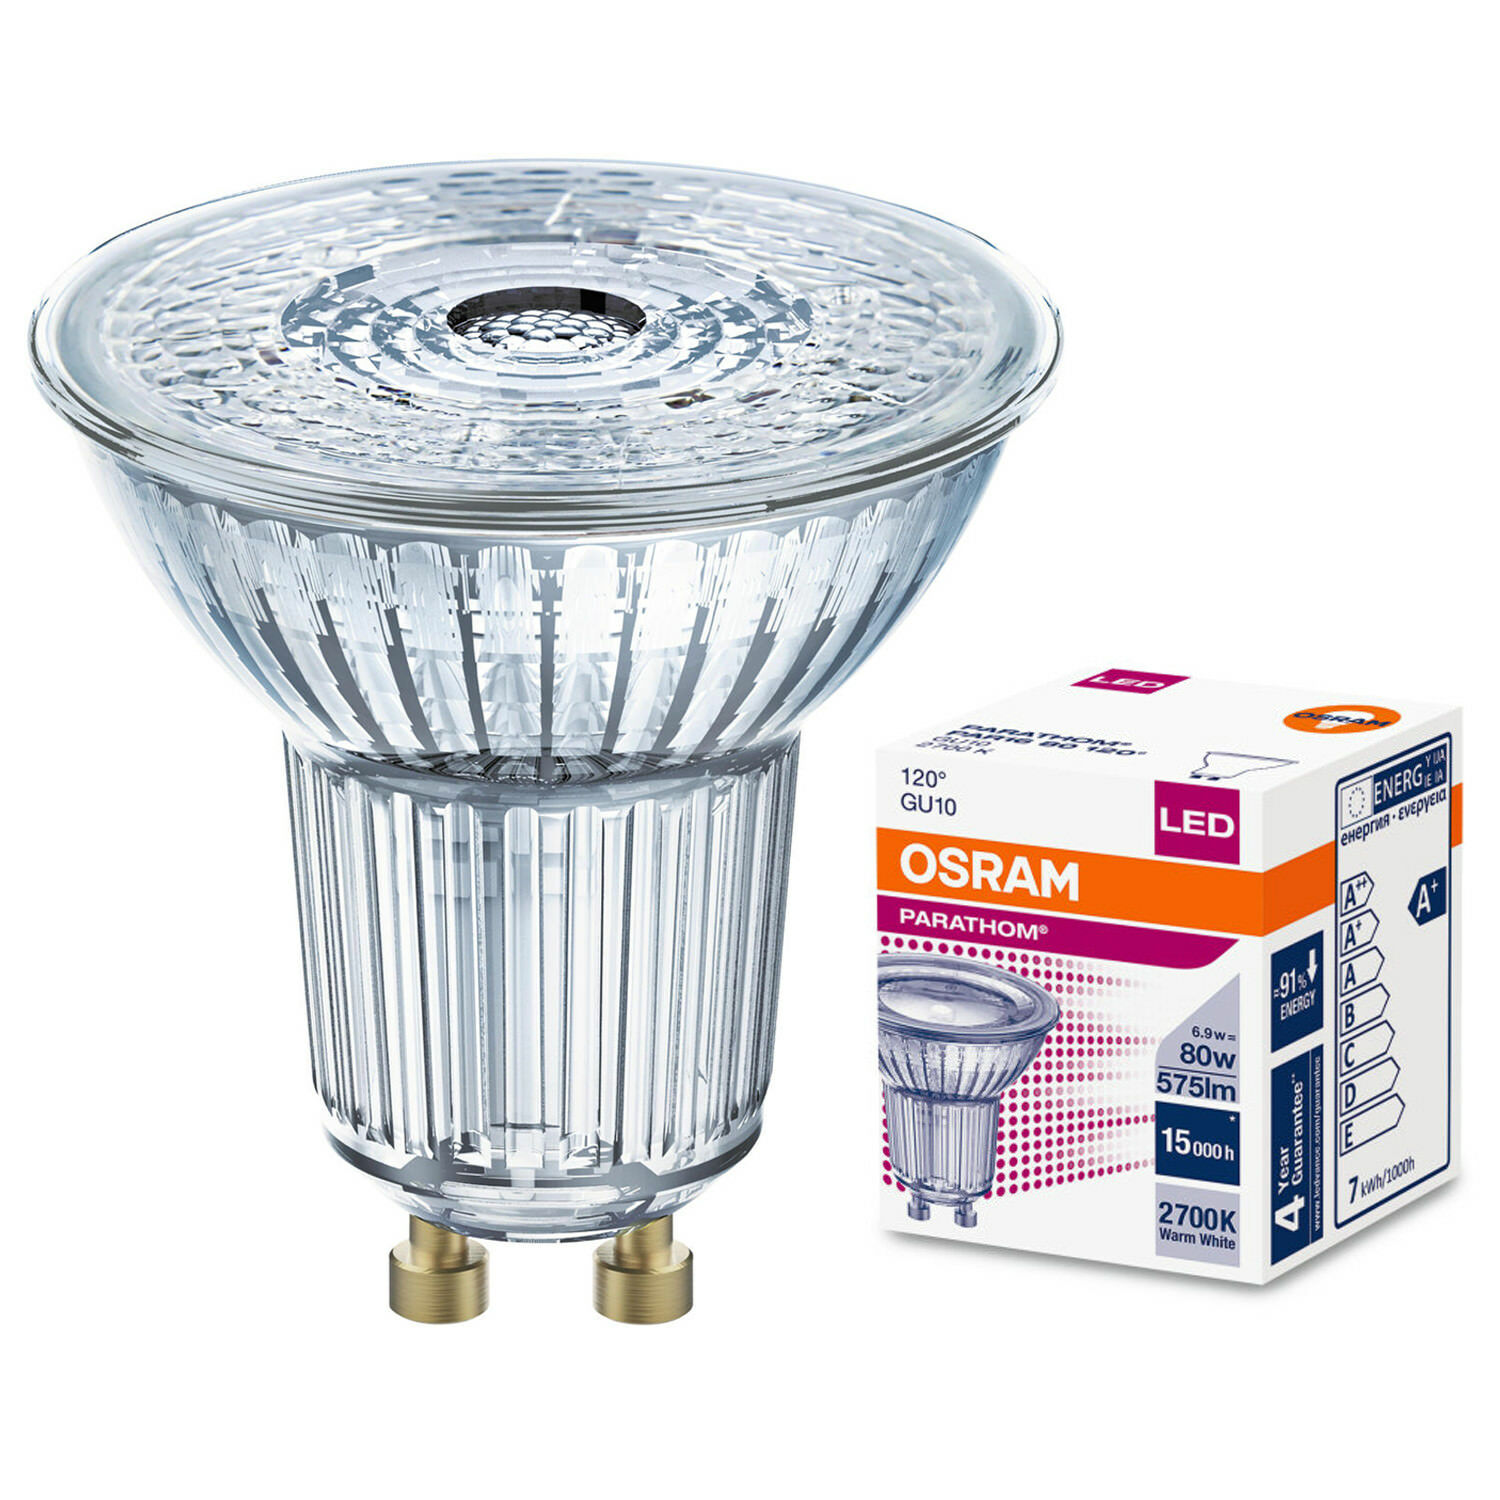 Gu10 C 1x 3x 5x Osram Led Reflector Gu10 Lamps Par16 Cool And Warm